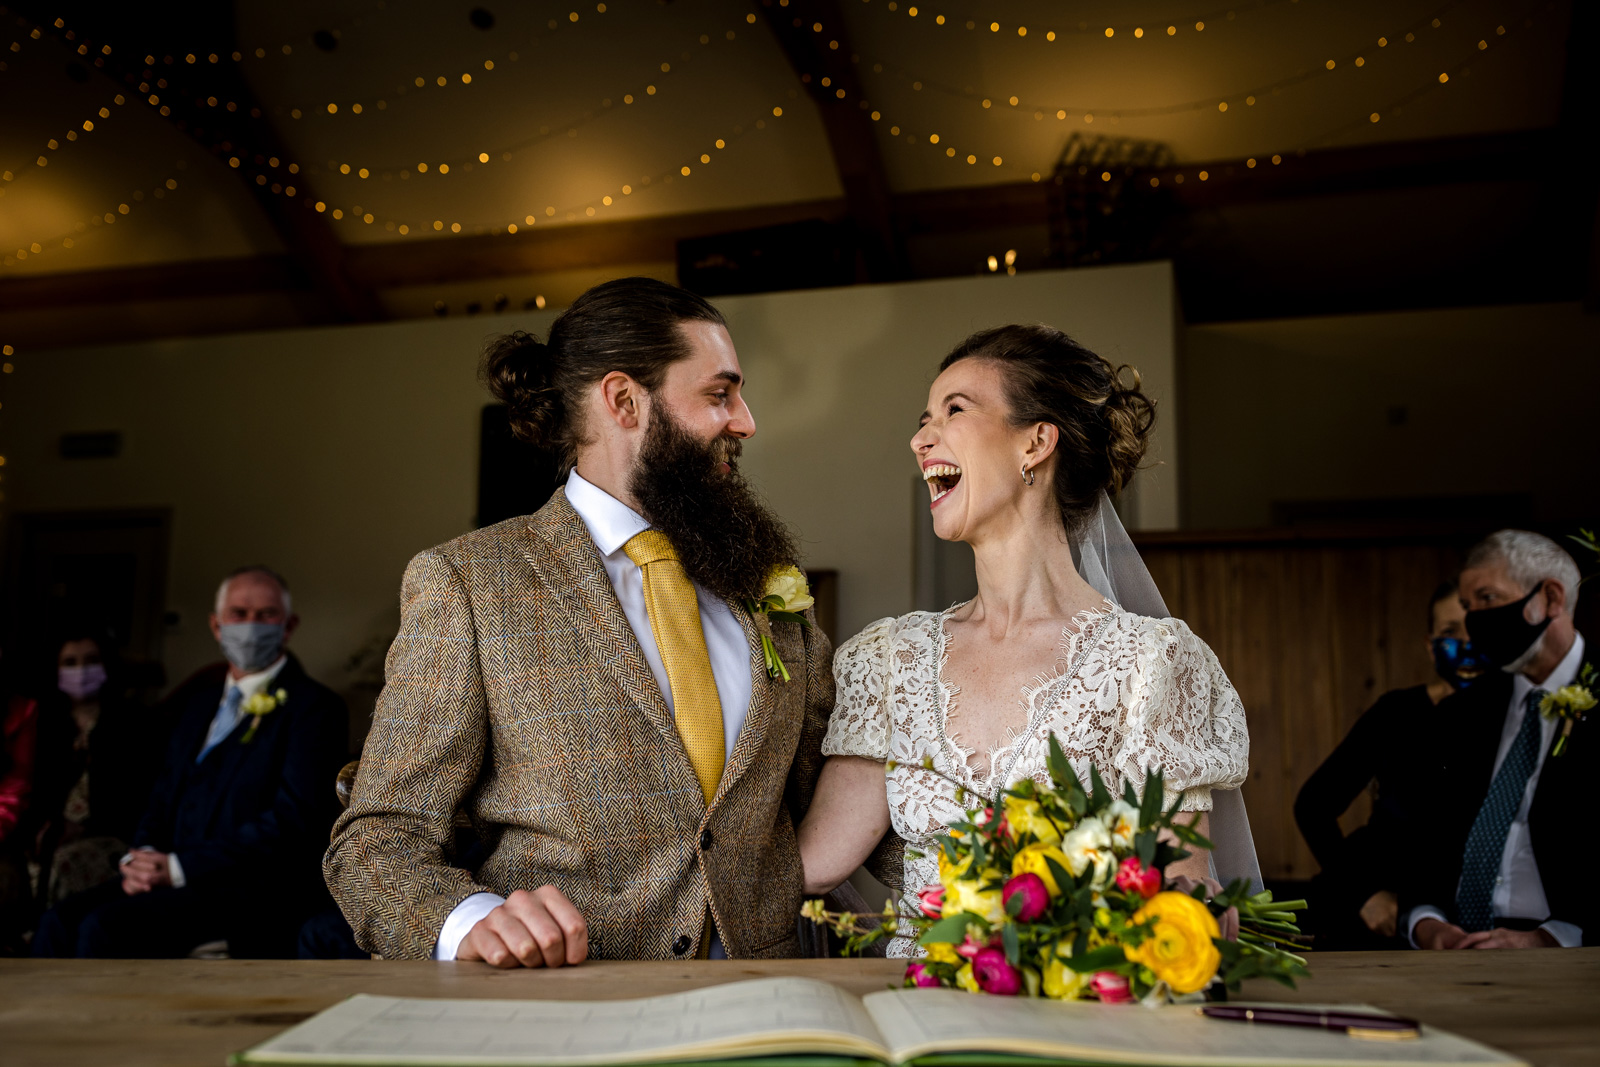 Stylish and Relaxed Celebration at Hidden River Cabins Wedding Barn in Cumbria